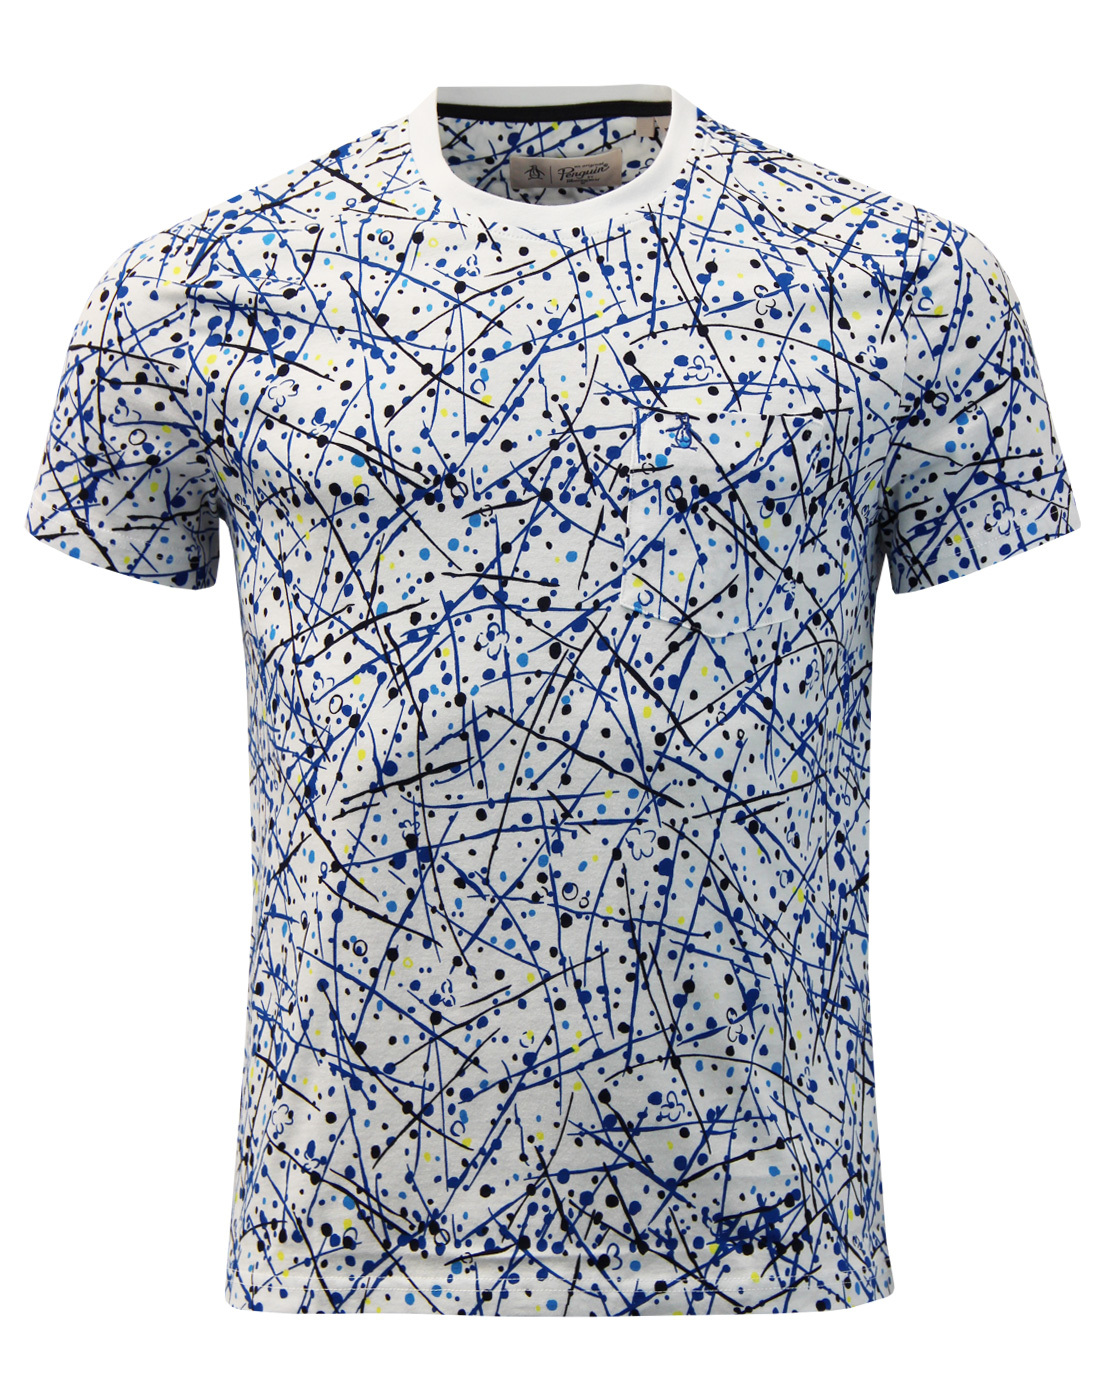 ORIGINAL PENGUIN Retro Paint Splatter Print Tee